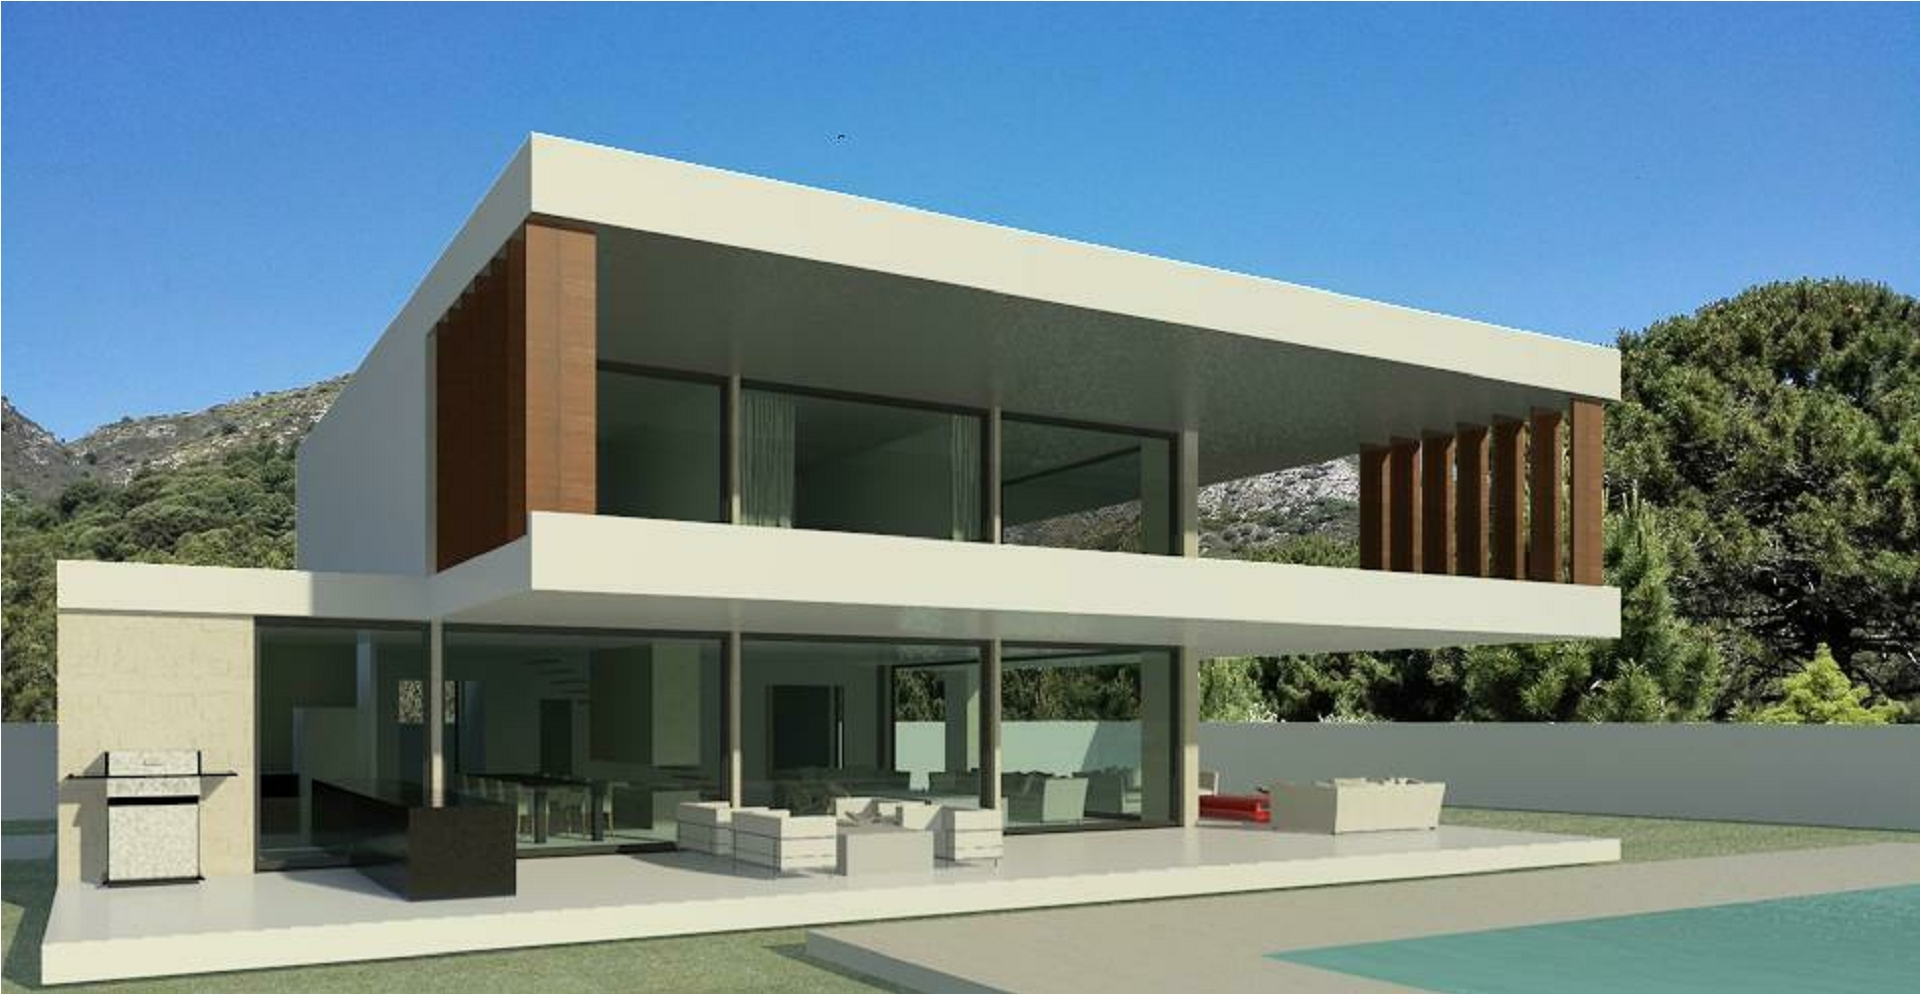 Brazilian architecture Spain: modern new build villas on turnkey construction basis